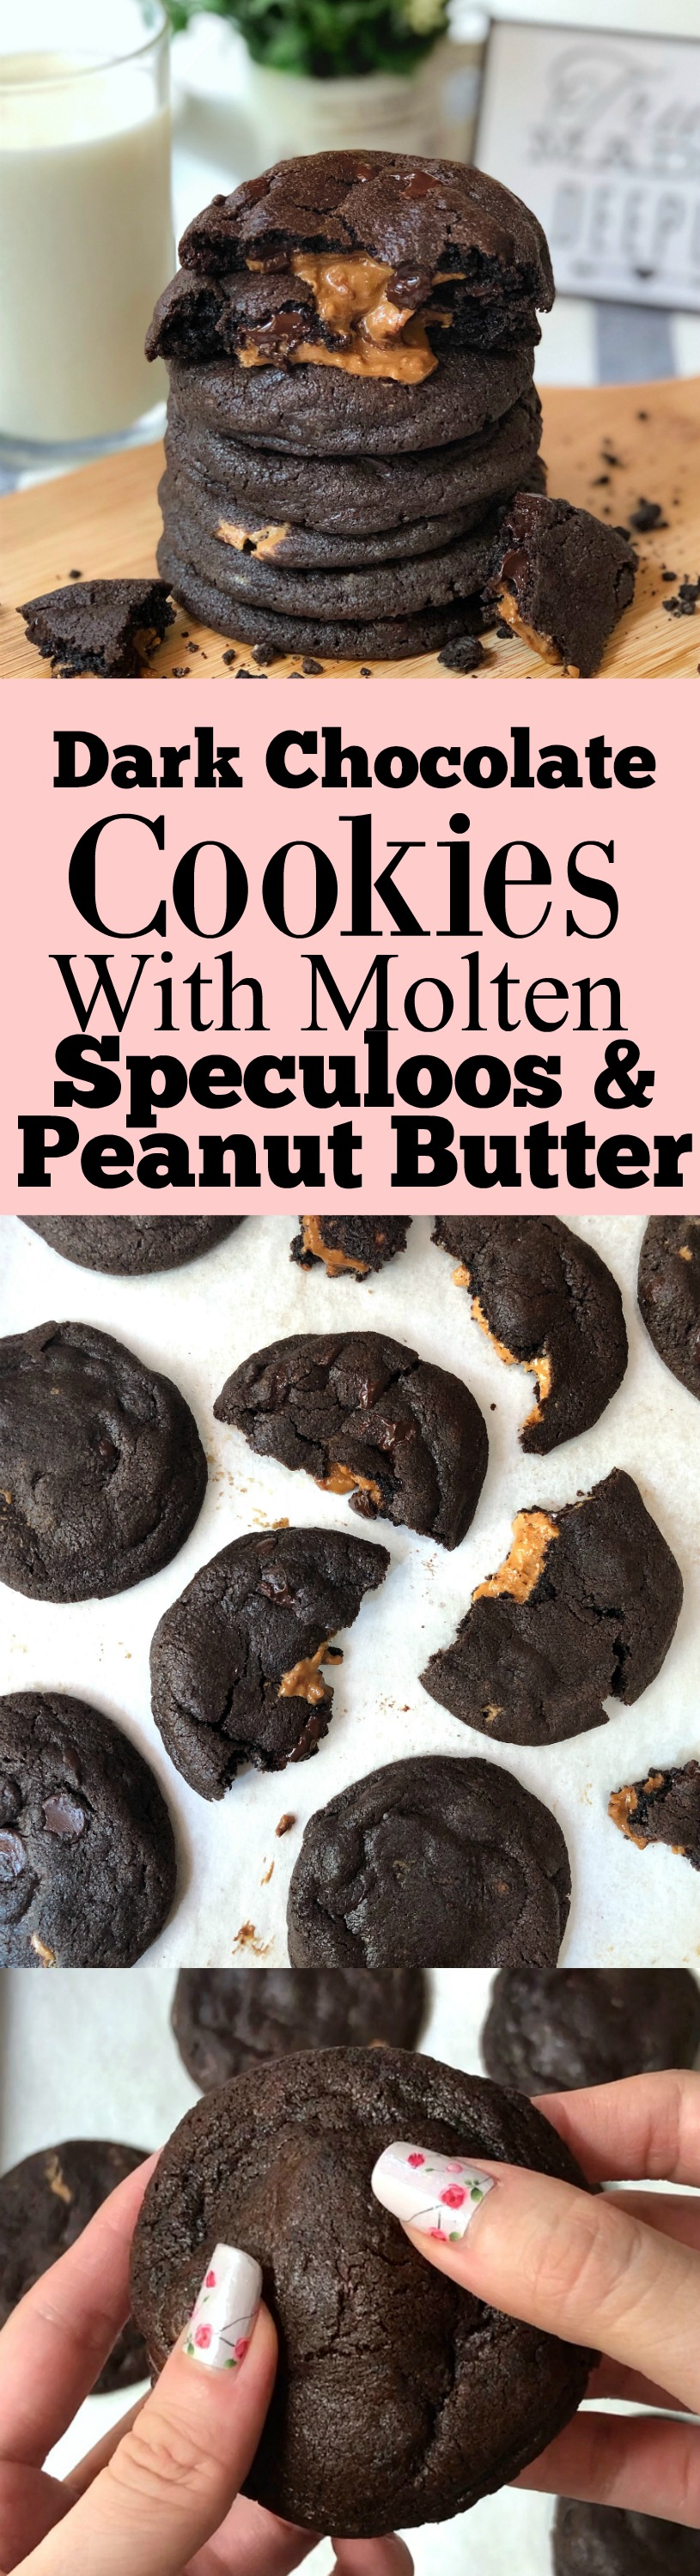 Dark Chocolate Cookies with Molten Speculoos or Peanut Butter